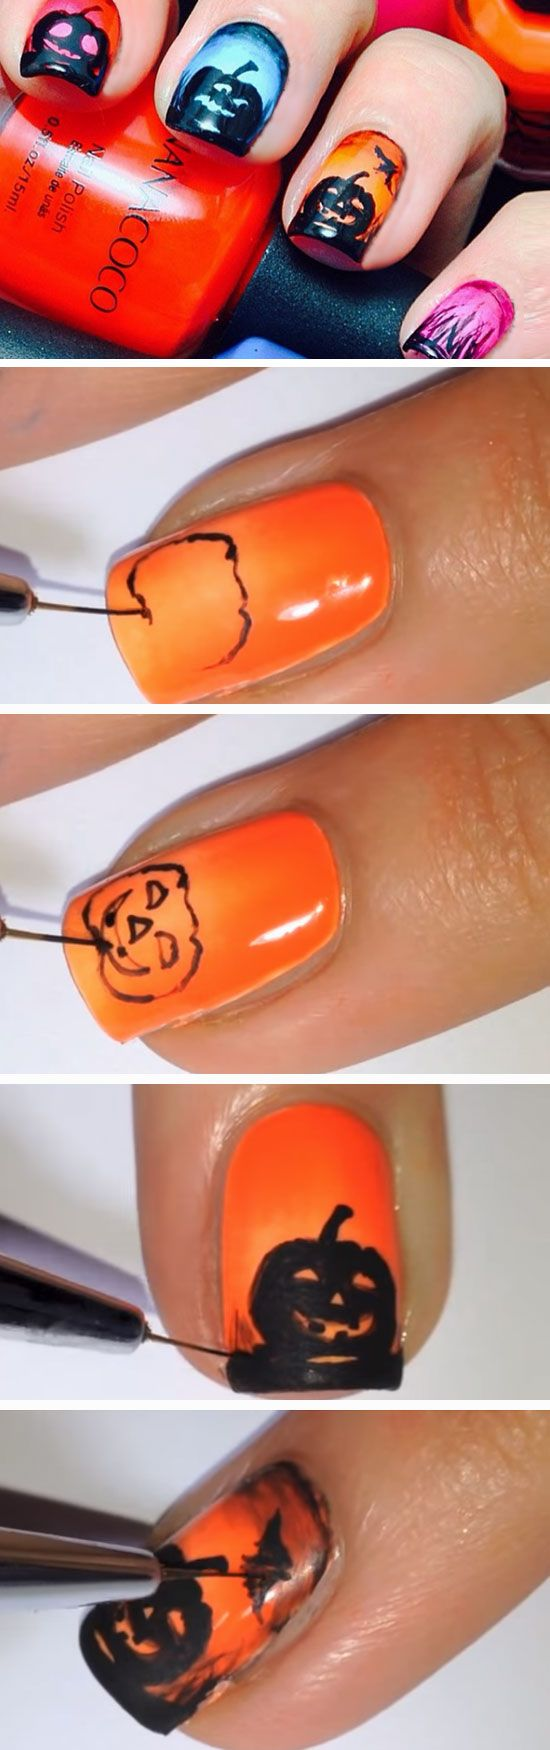 Multicolored Pumpkins | 23 Easy Halloween Nail Art Ideas for Teens that are totally spooktastic!